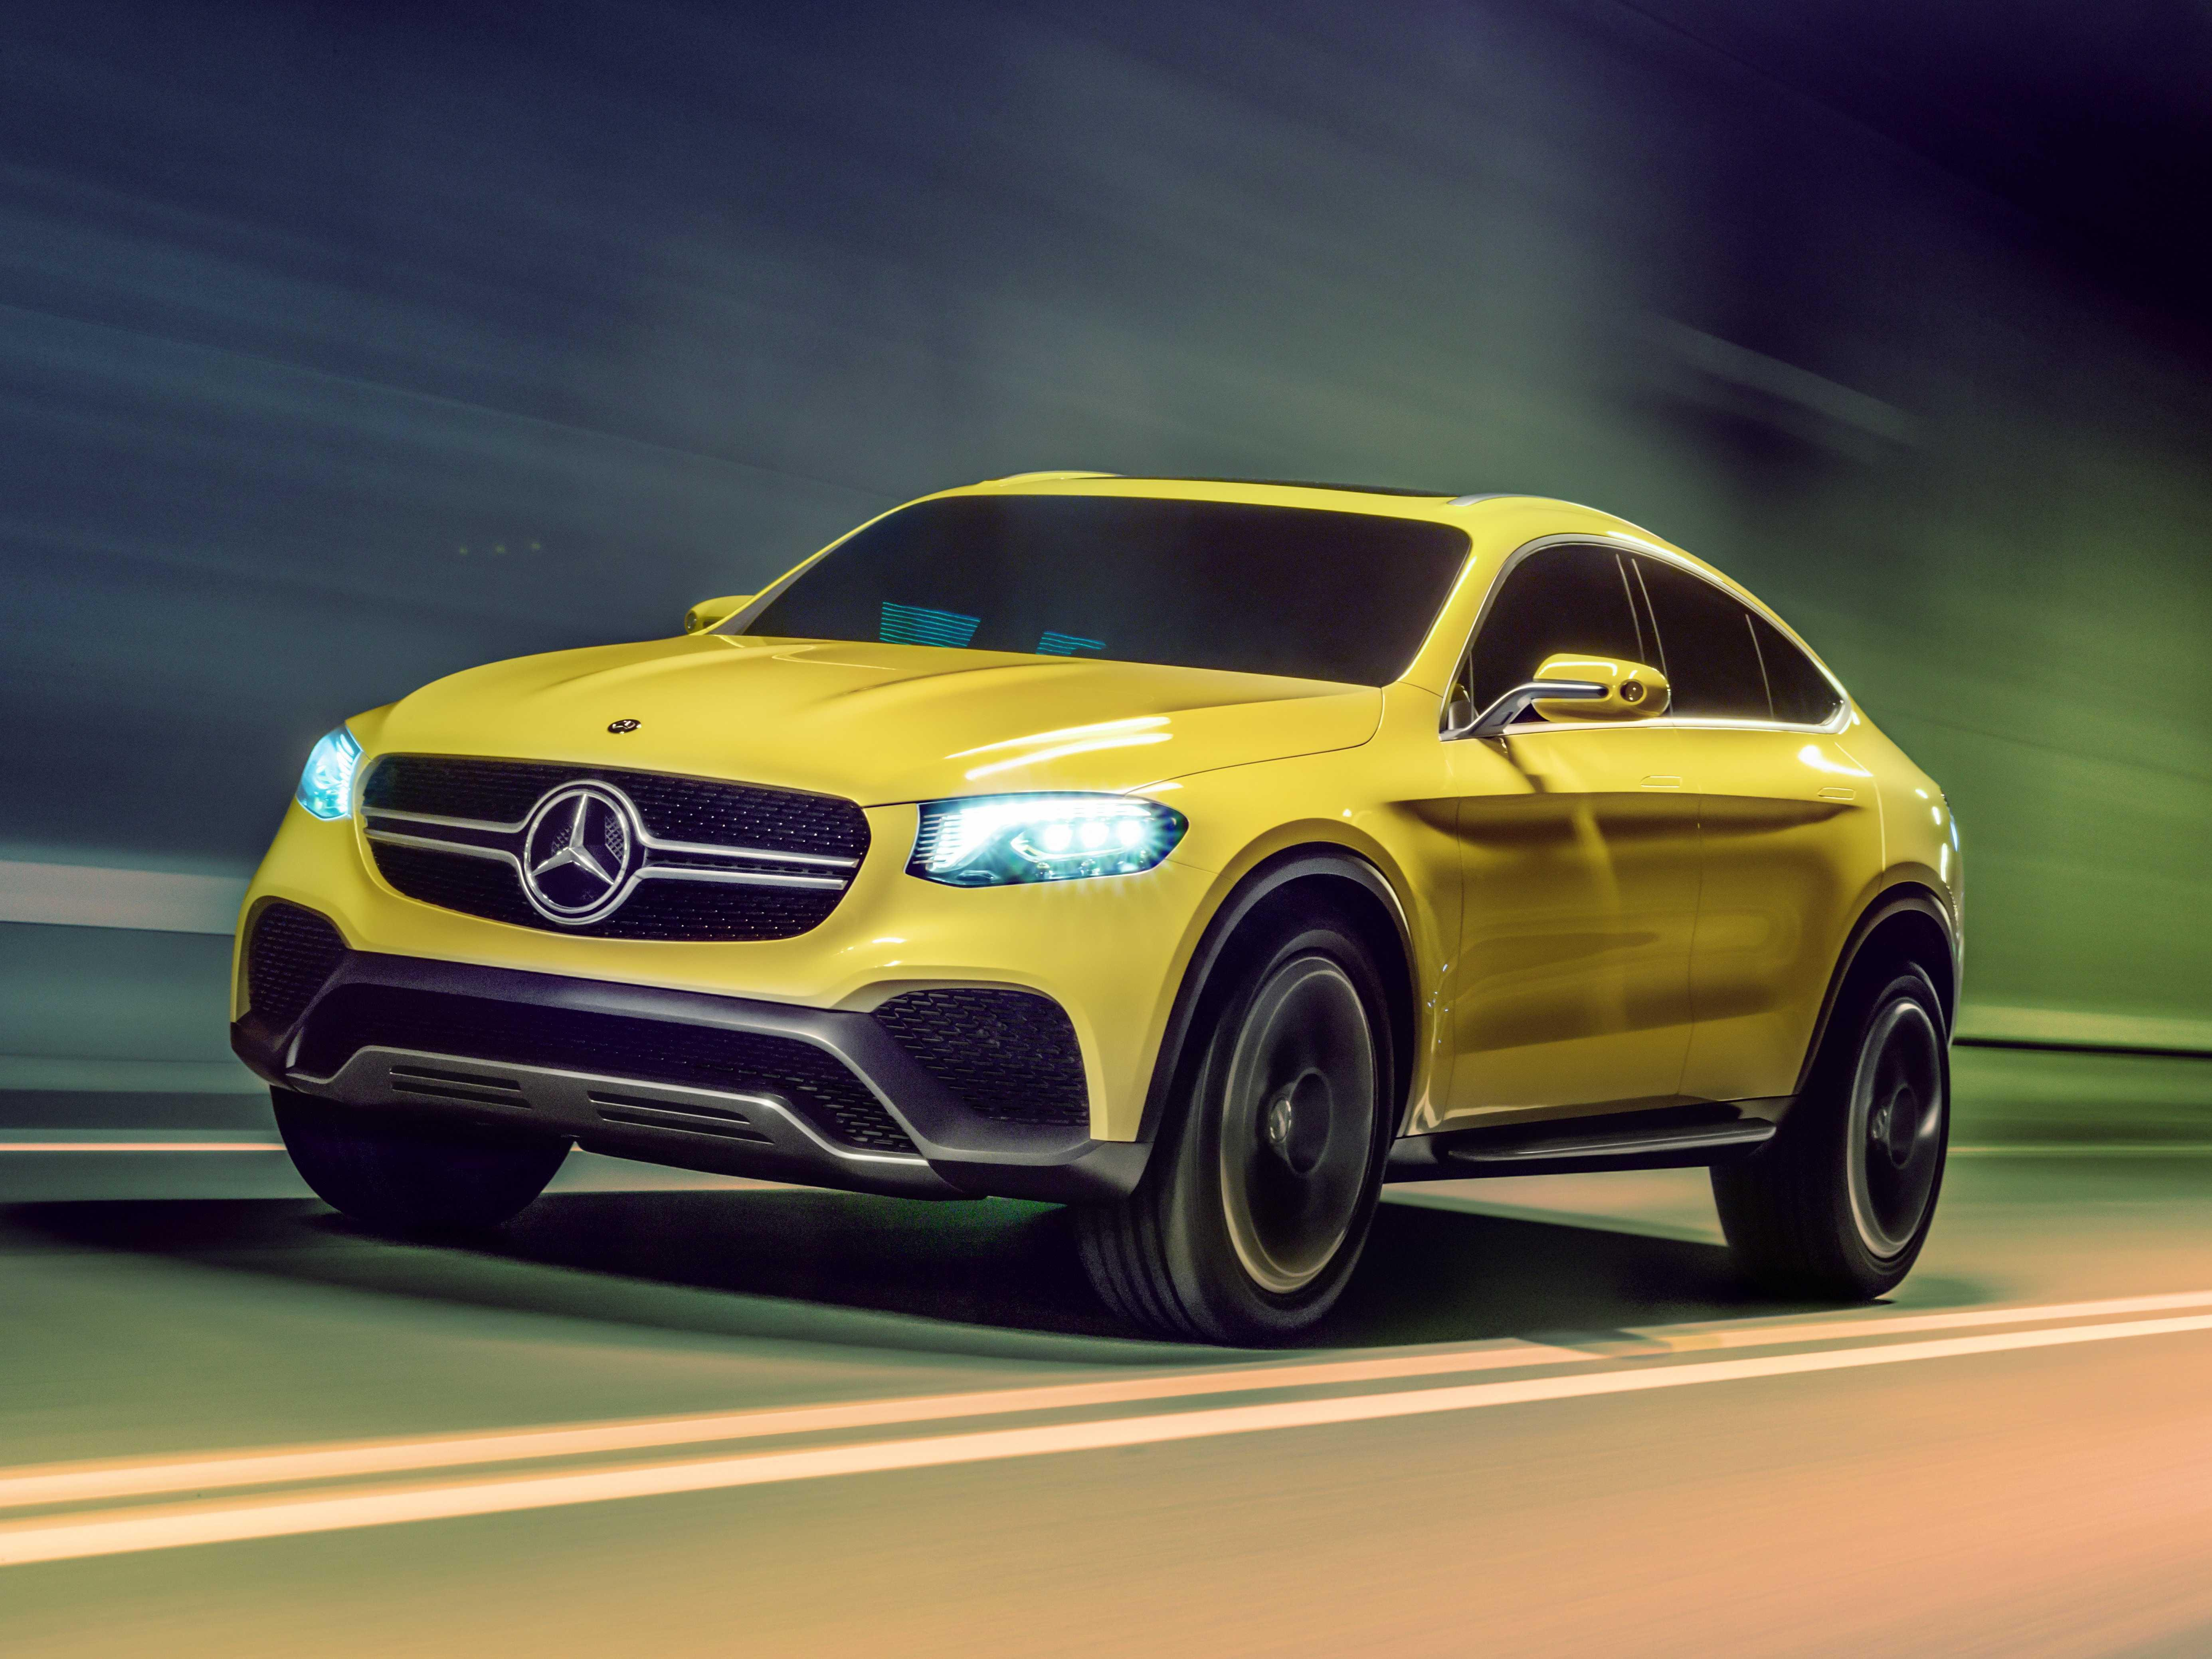 Mercedes and BMW are competing against each other to build some pretty strange cars